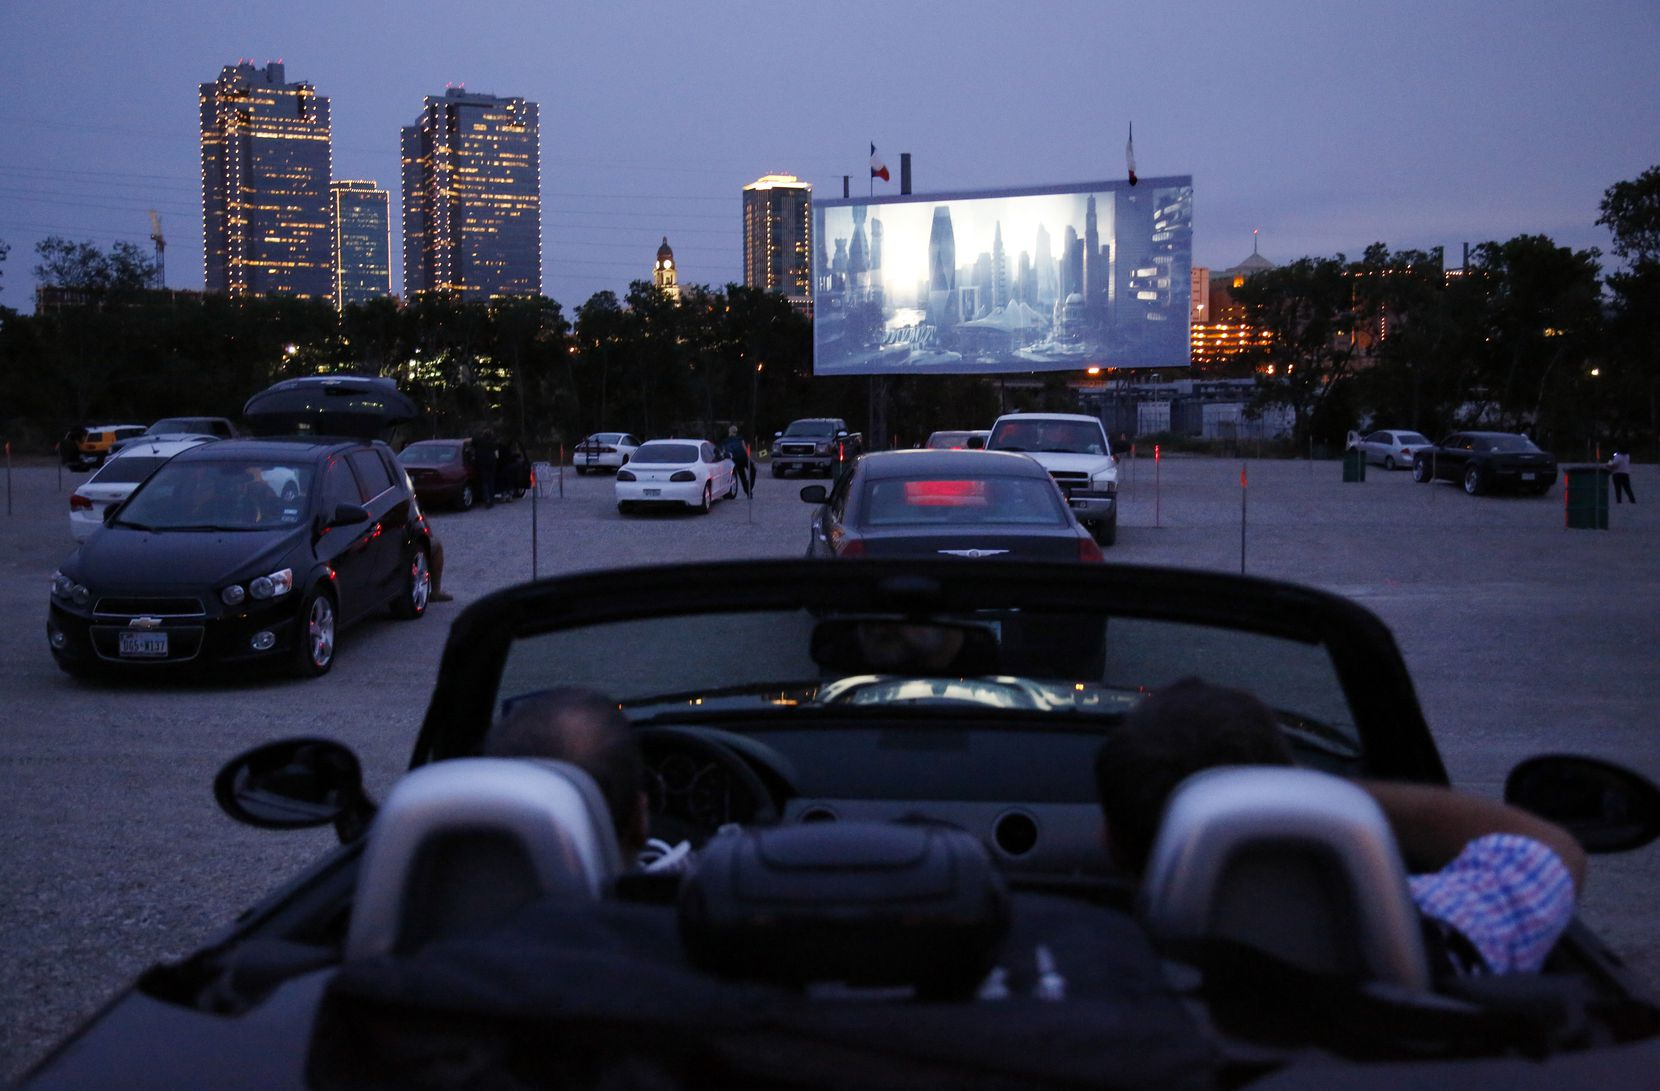 People watch the previews before the show while they visit the Coyote Drive-In in Fort Worth, TX on May 3, 2013. Background is downtown Fort Worth skyline. (Kye R. Lee/The Dallas Morning News) 05102013xBRIEFING 08152014xBRIEFING 01142015xARTSLIFE